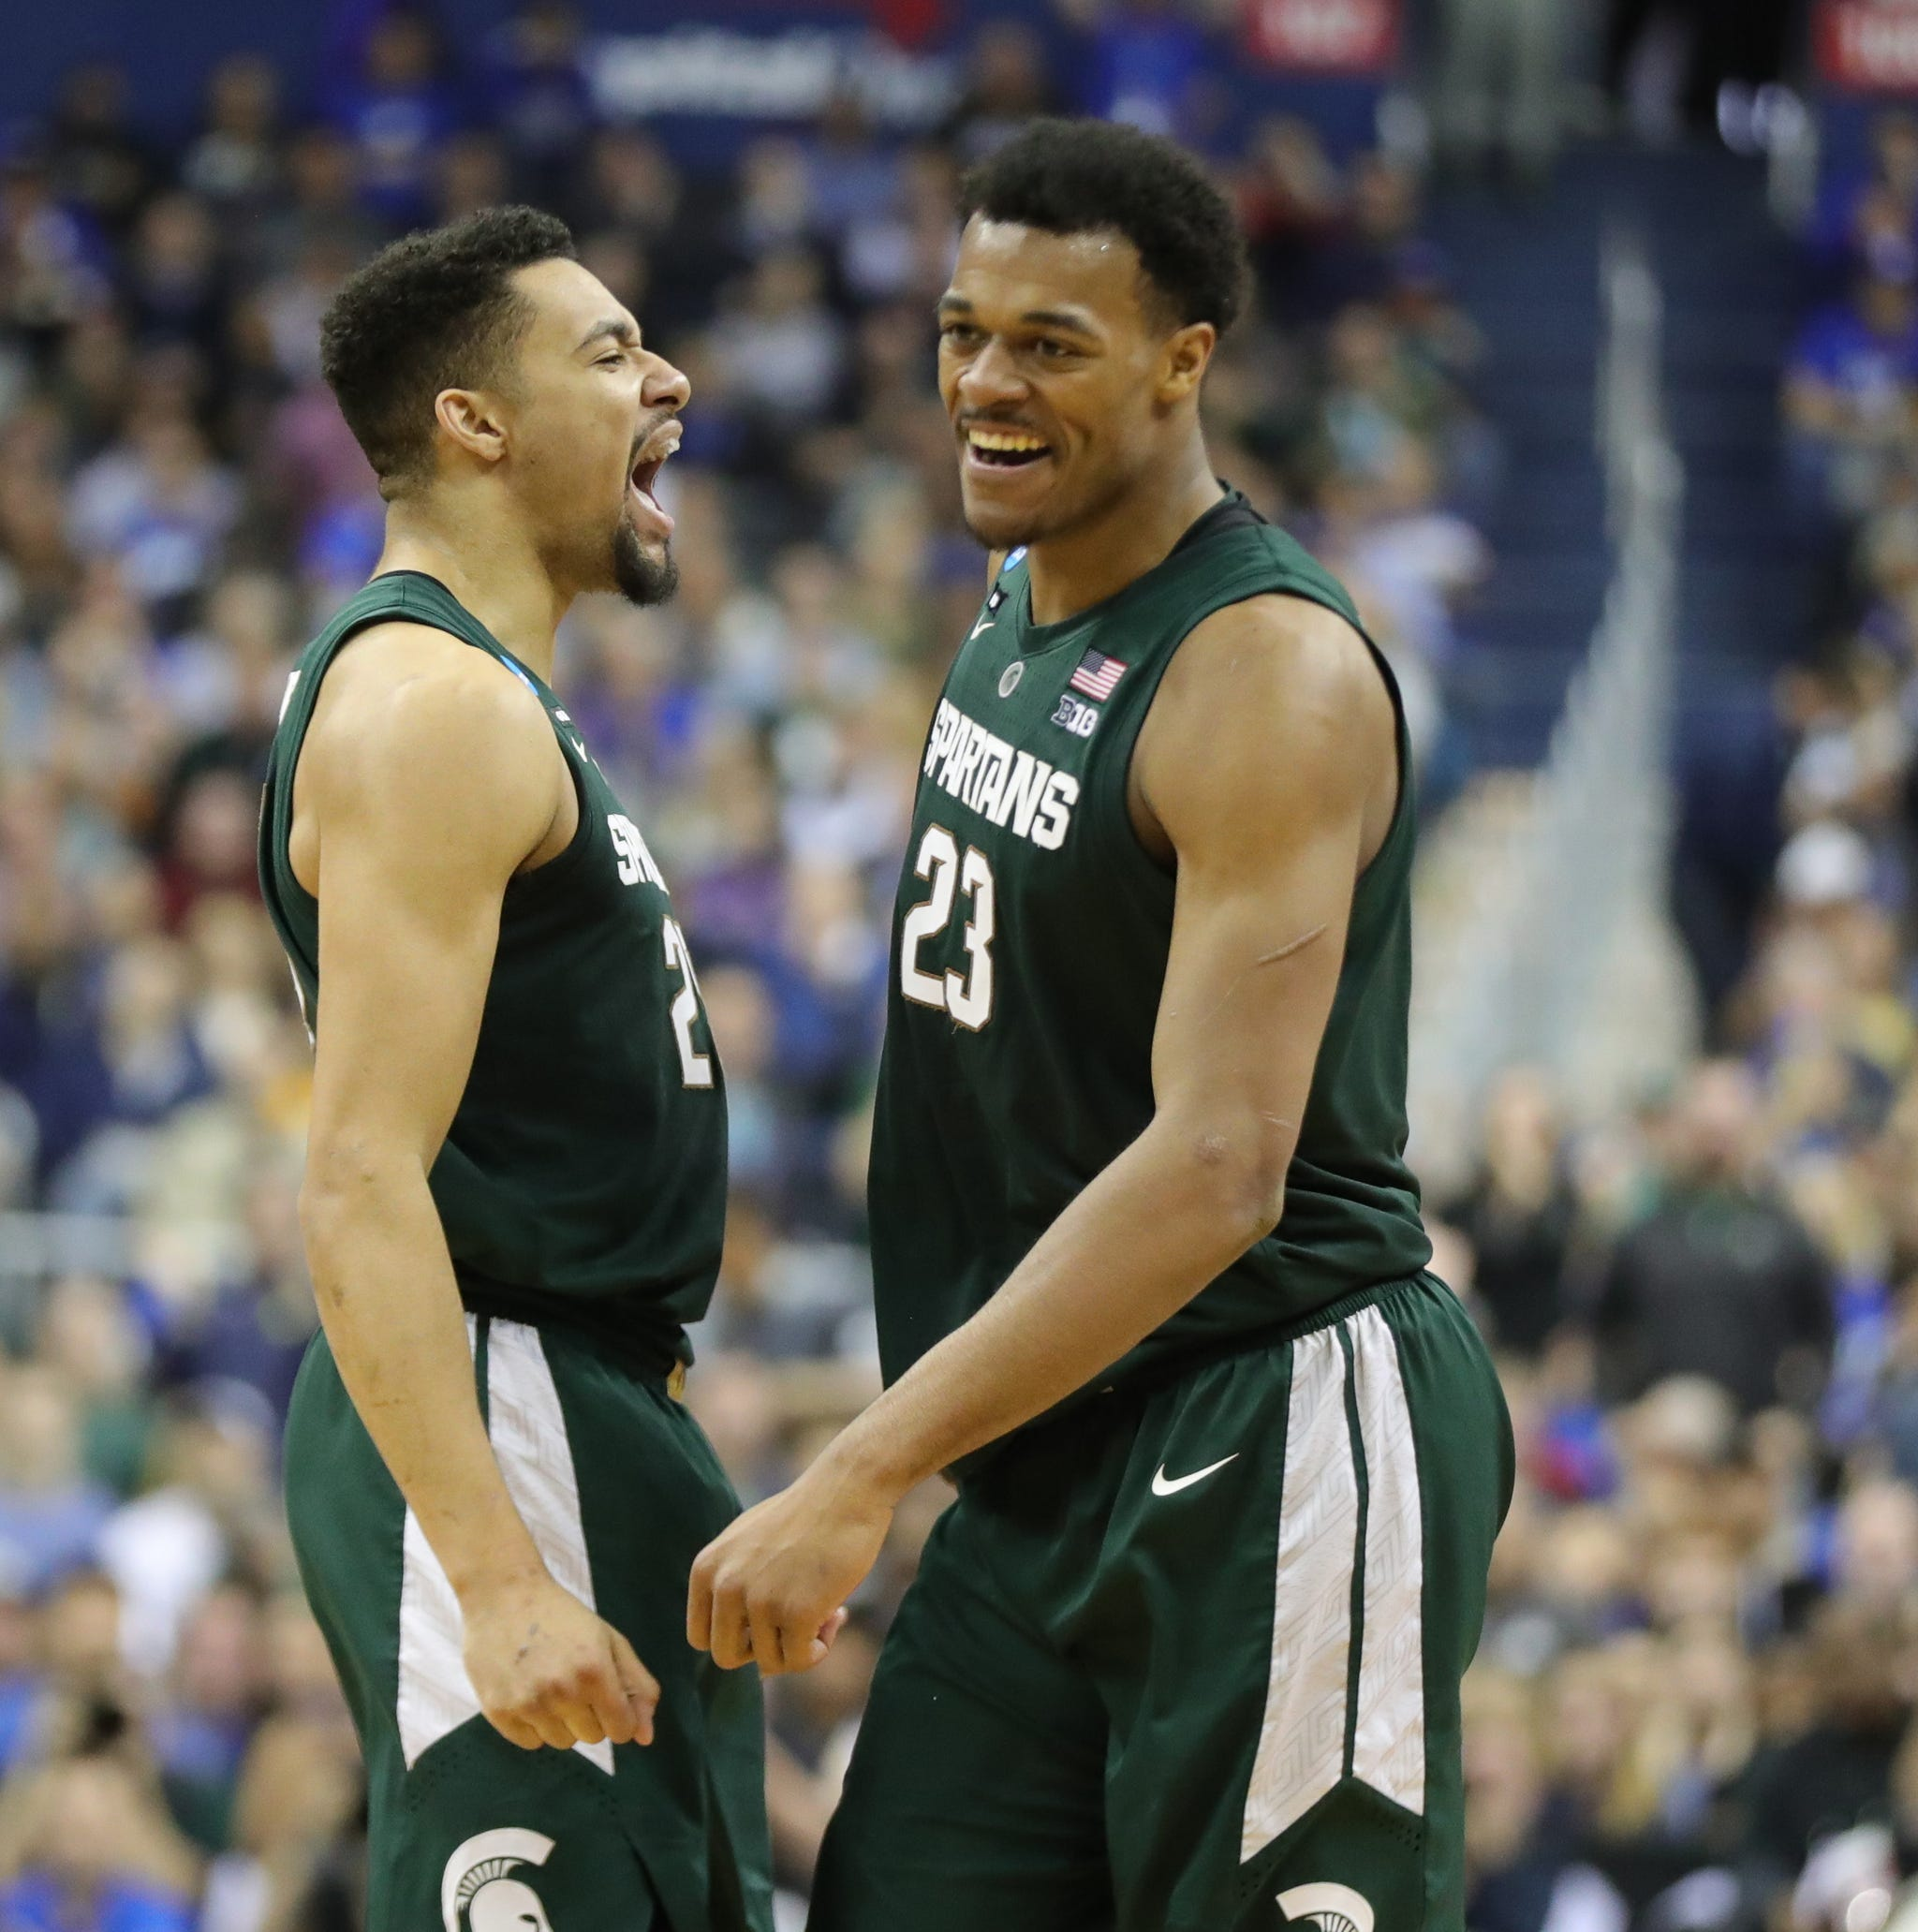 Time to get jacked with this Michigan State basketball hype video